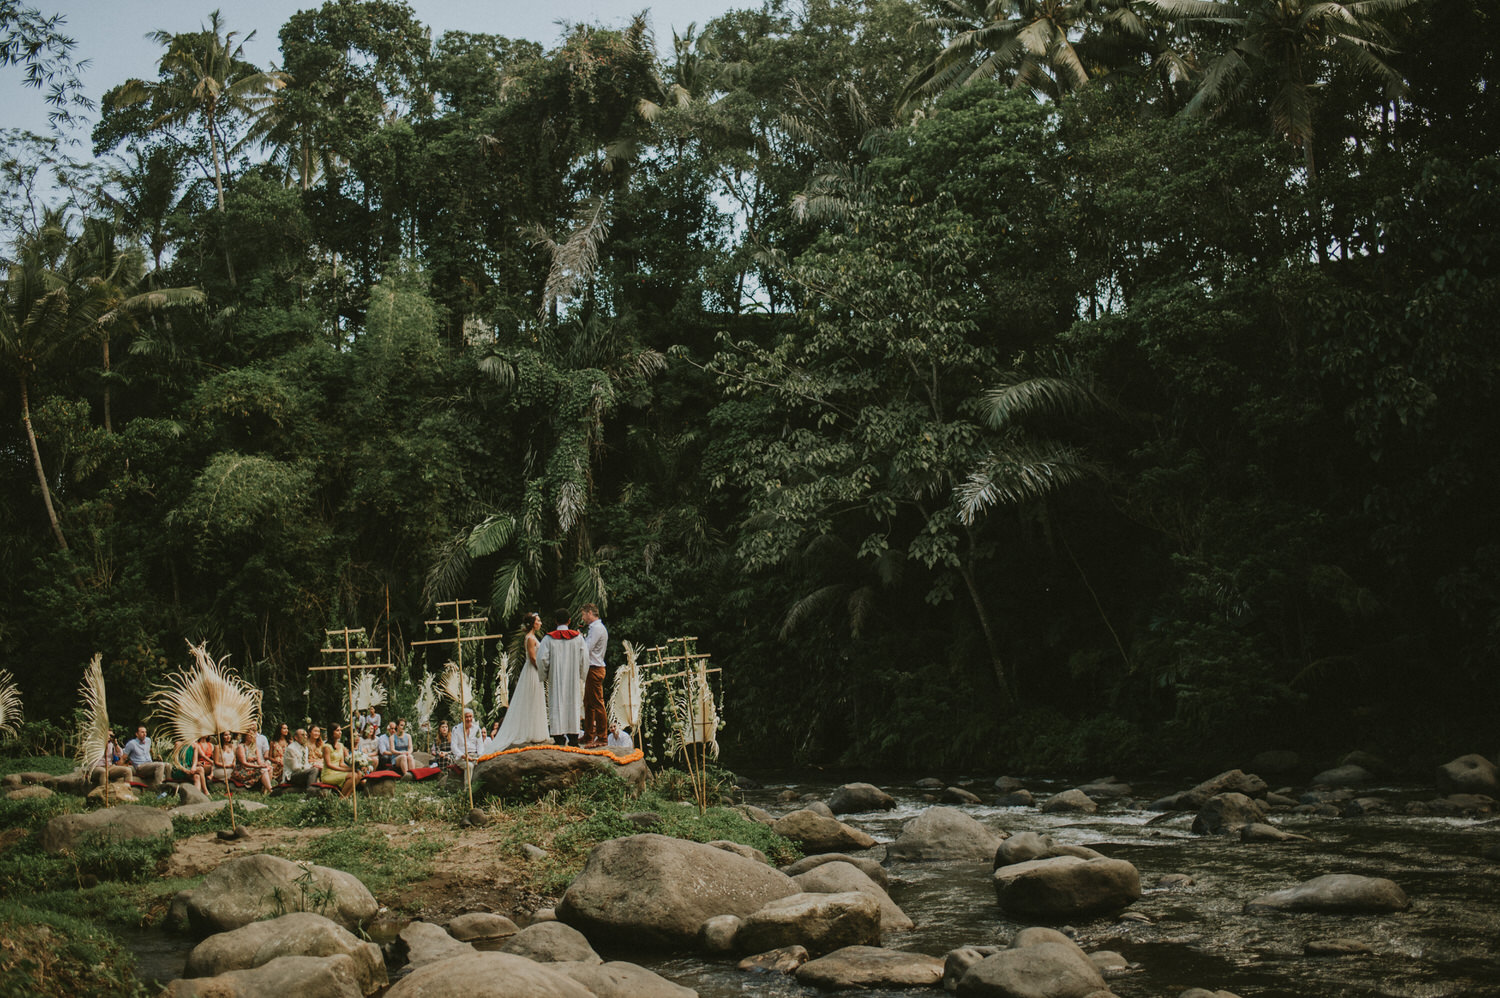 bali-wedding-ubud-wedding-wedding-destination-diktatphotography-kadek-artayasa-elaine-and-glenn-073